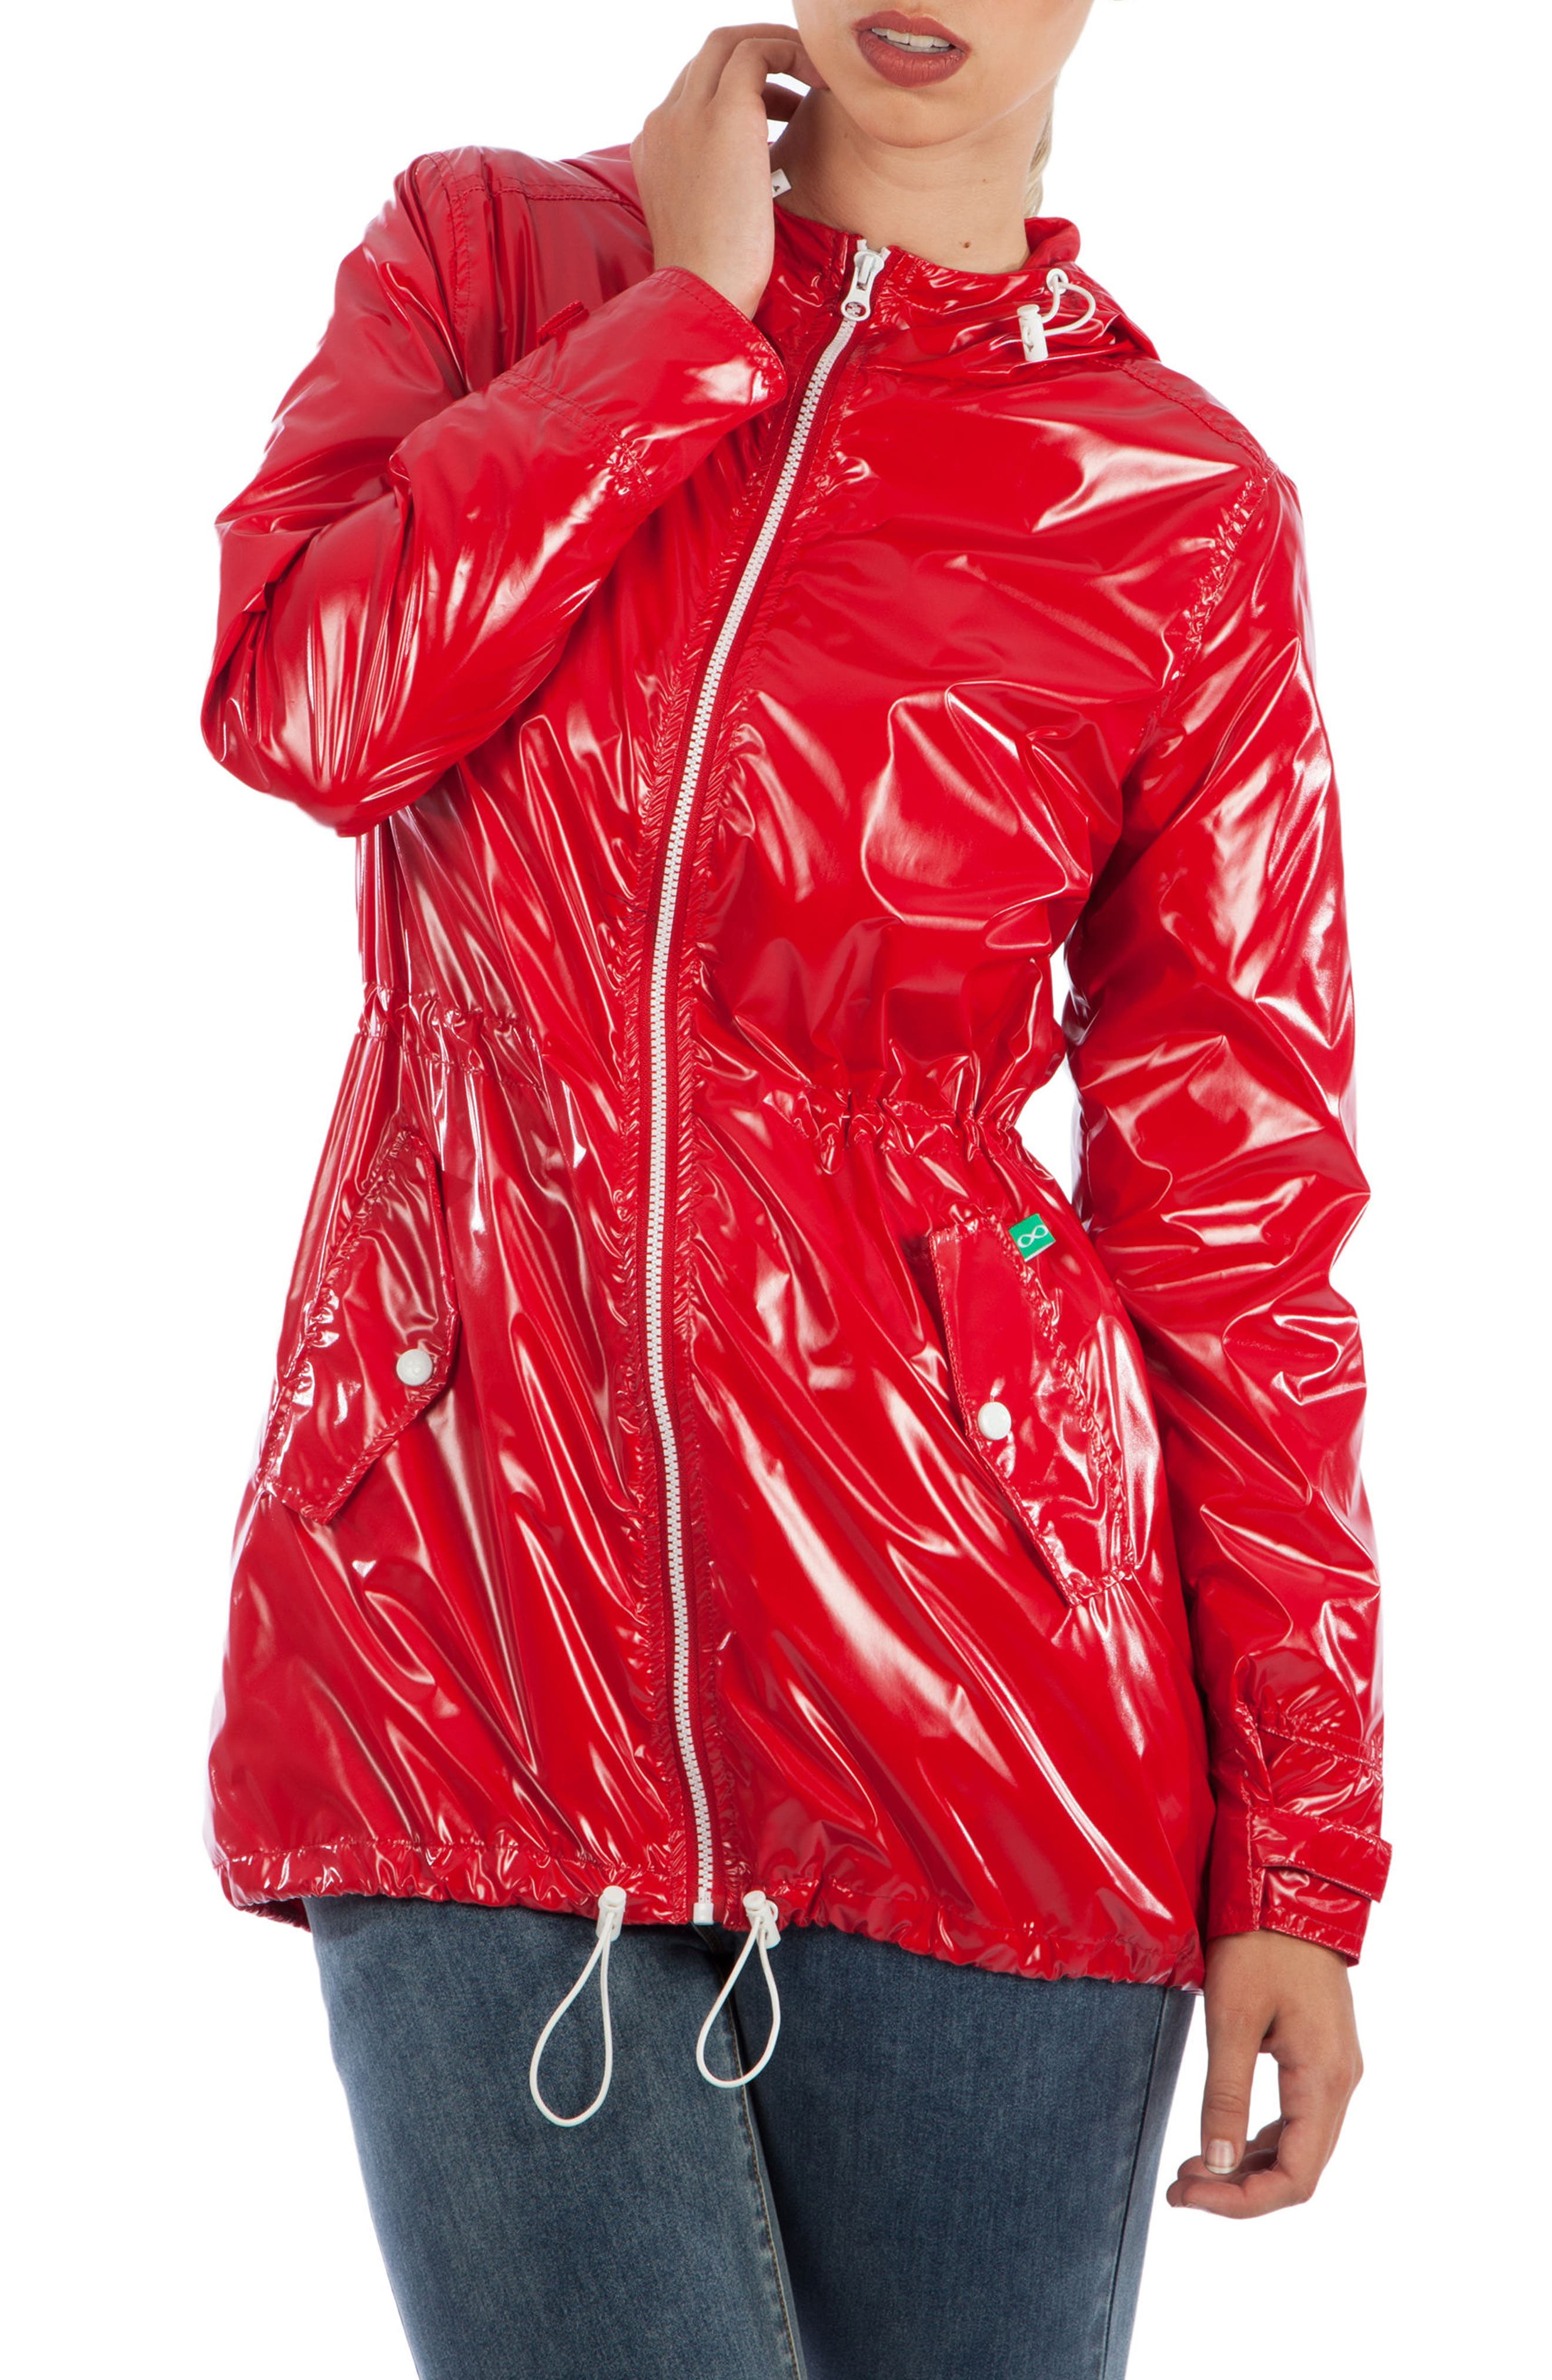 Main Image - Modern Eternity Waterproof Convertible Maternity Raincoat